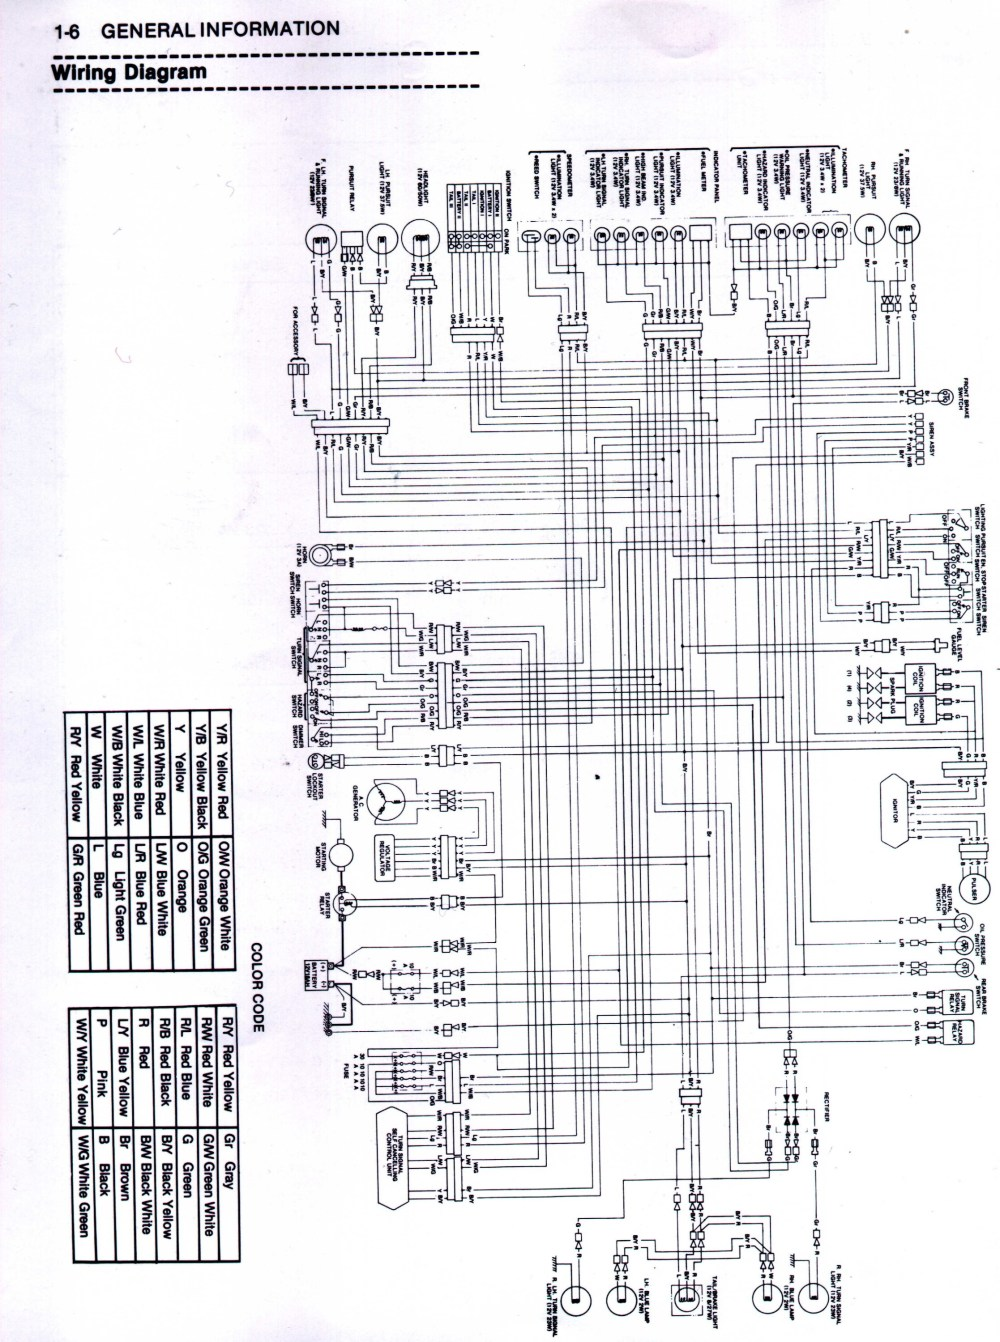 medium resolution of 1980 f350 wiring diagram alt wiring library honda cx500 wiring diagram 1980 honda cb650 wiring diagram